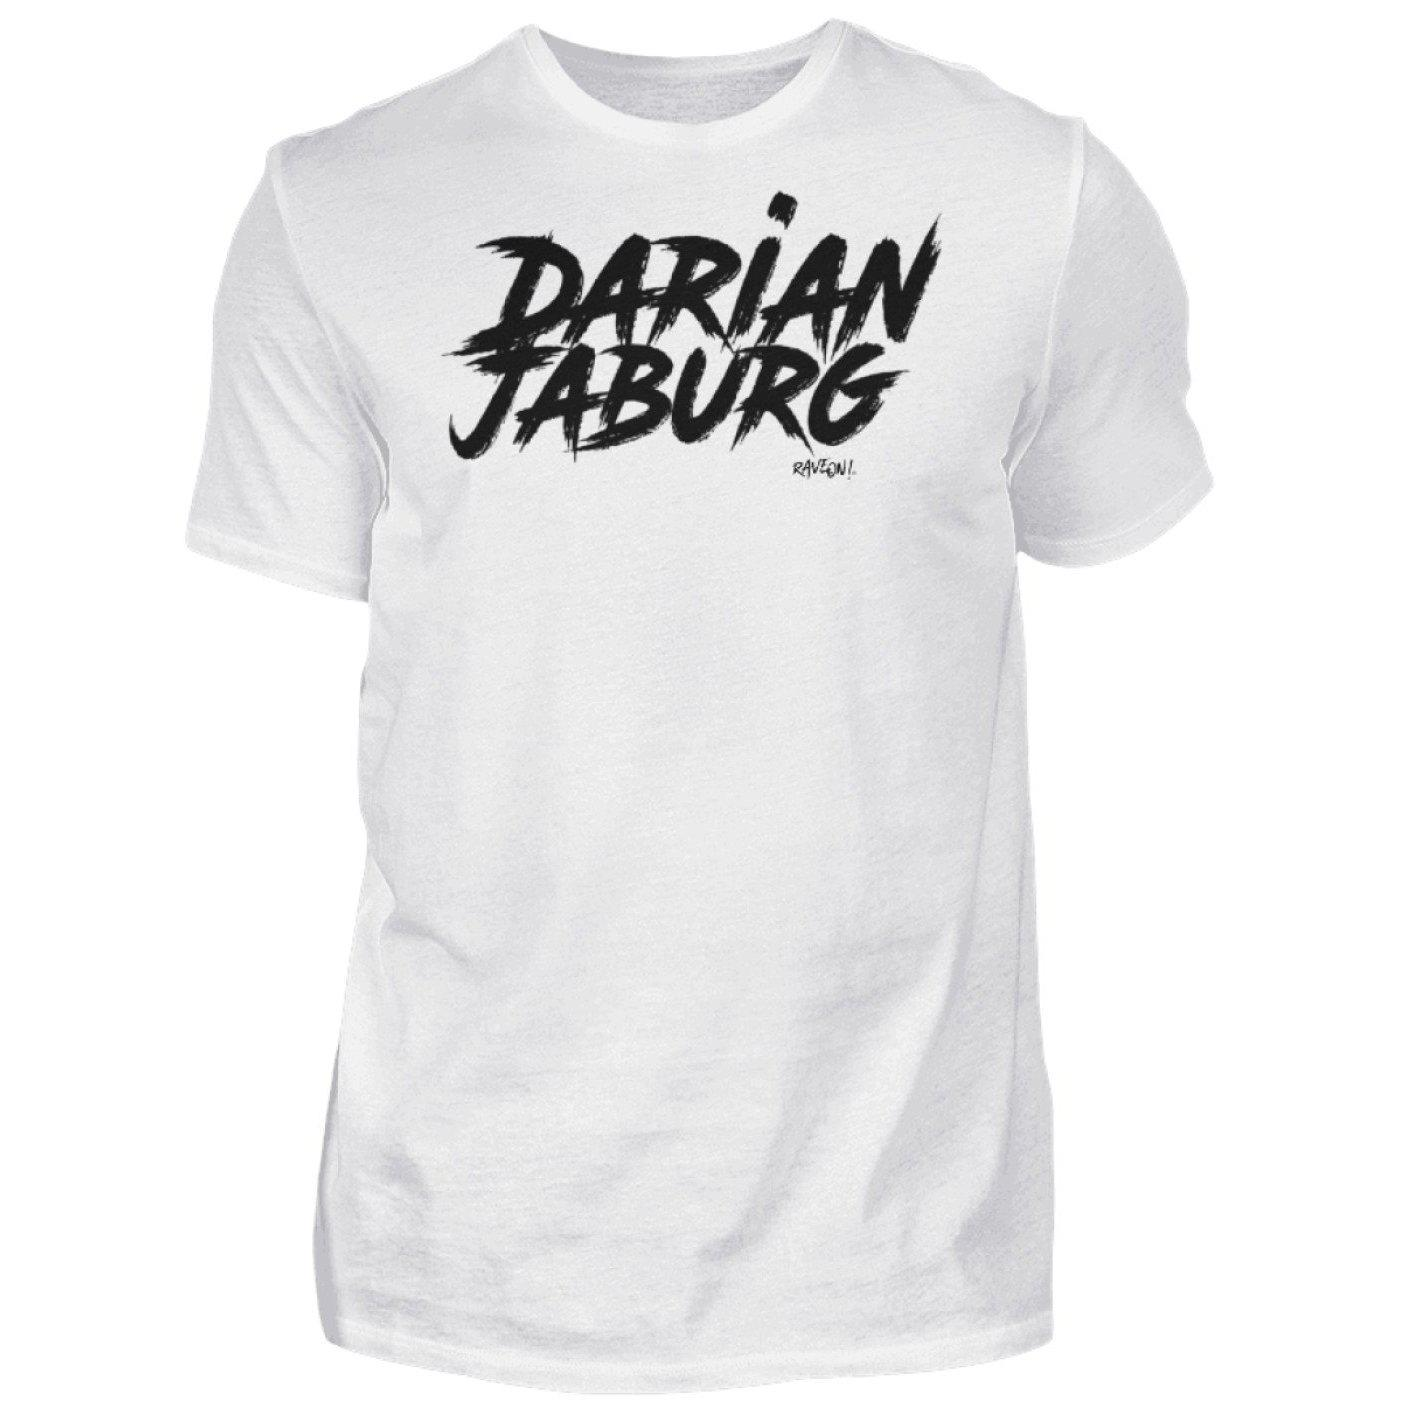 Darian Jaburg - BS Rec.White - Rave On!® - Herren Premiumshirt Herren Premium Shirt White / S - Rave On!® der Club & Techno Szene Shop für Coole Junge Mode Streetwear Style & Fashion Outfits + Sexy Festival 420 Stuff